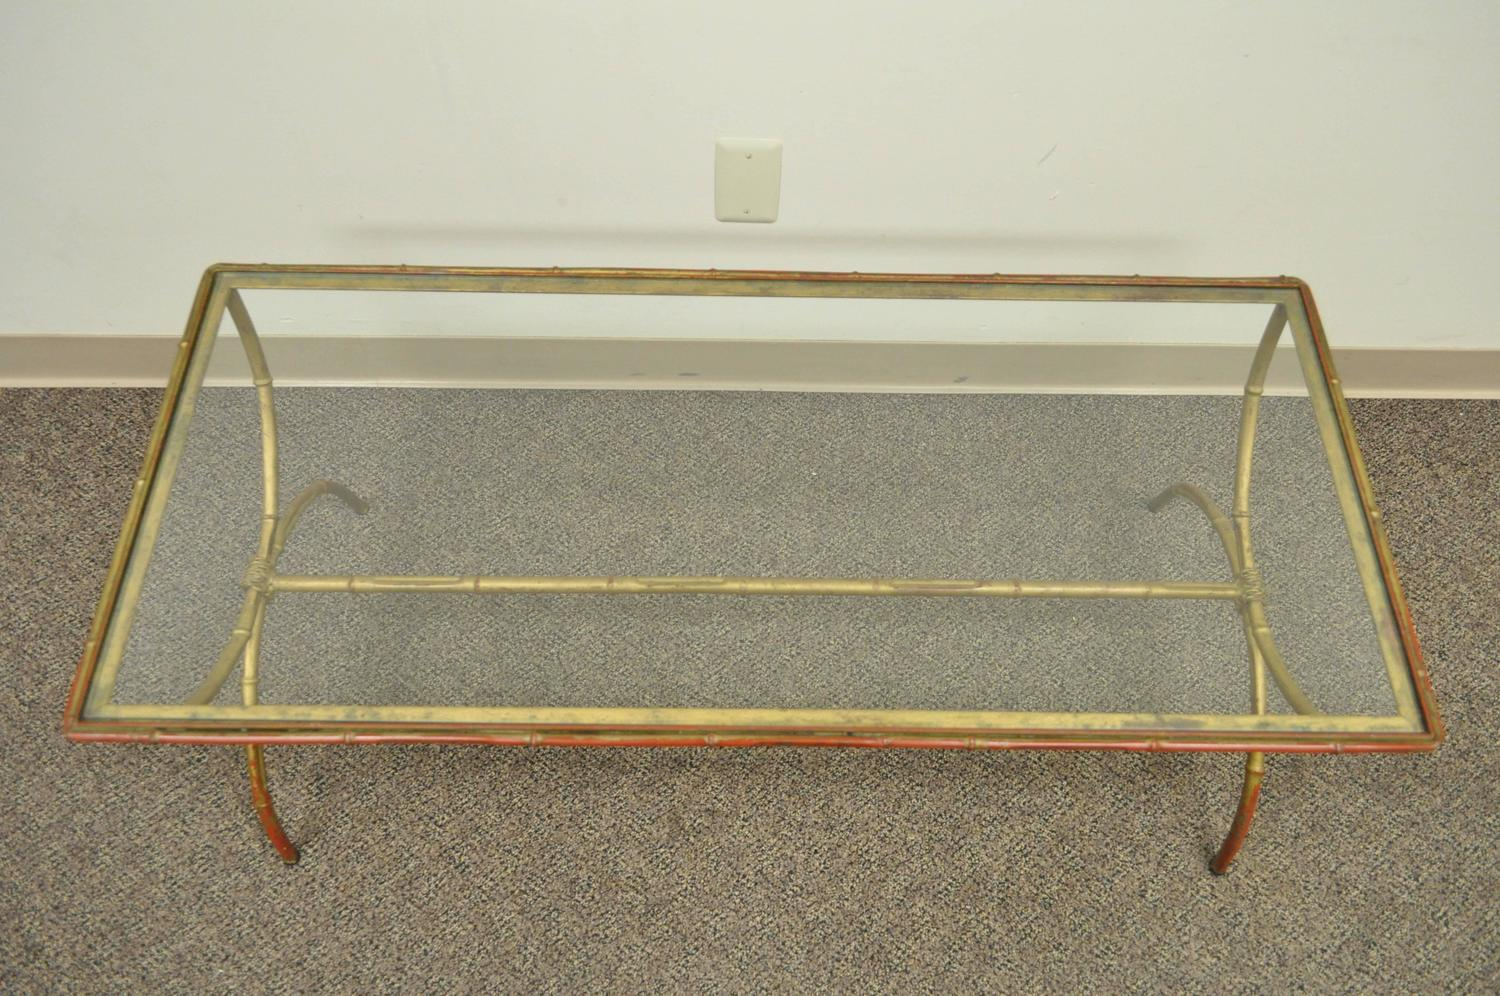 Vintage 1940s Italian Gold Gilt Iron Hollywood Regency Faux Bamboo Coffee Table For Sale At 1stdibs